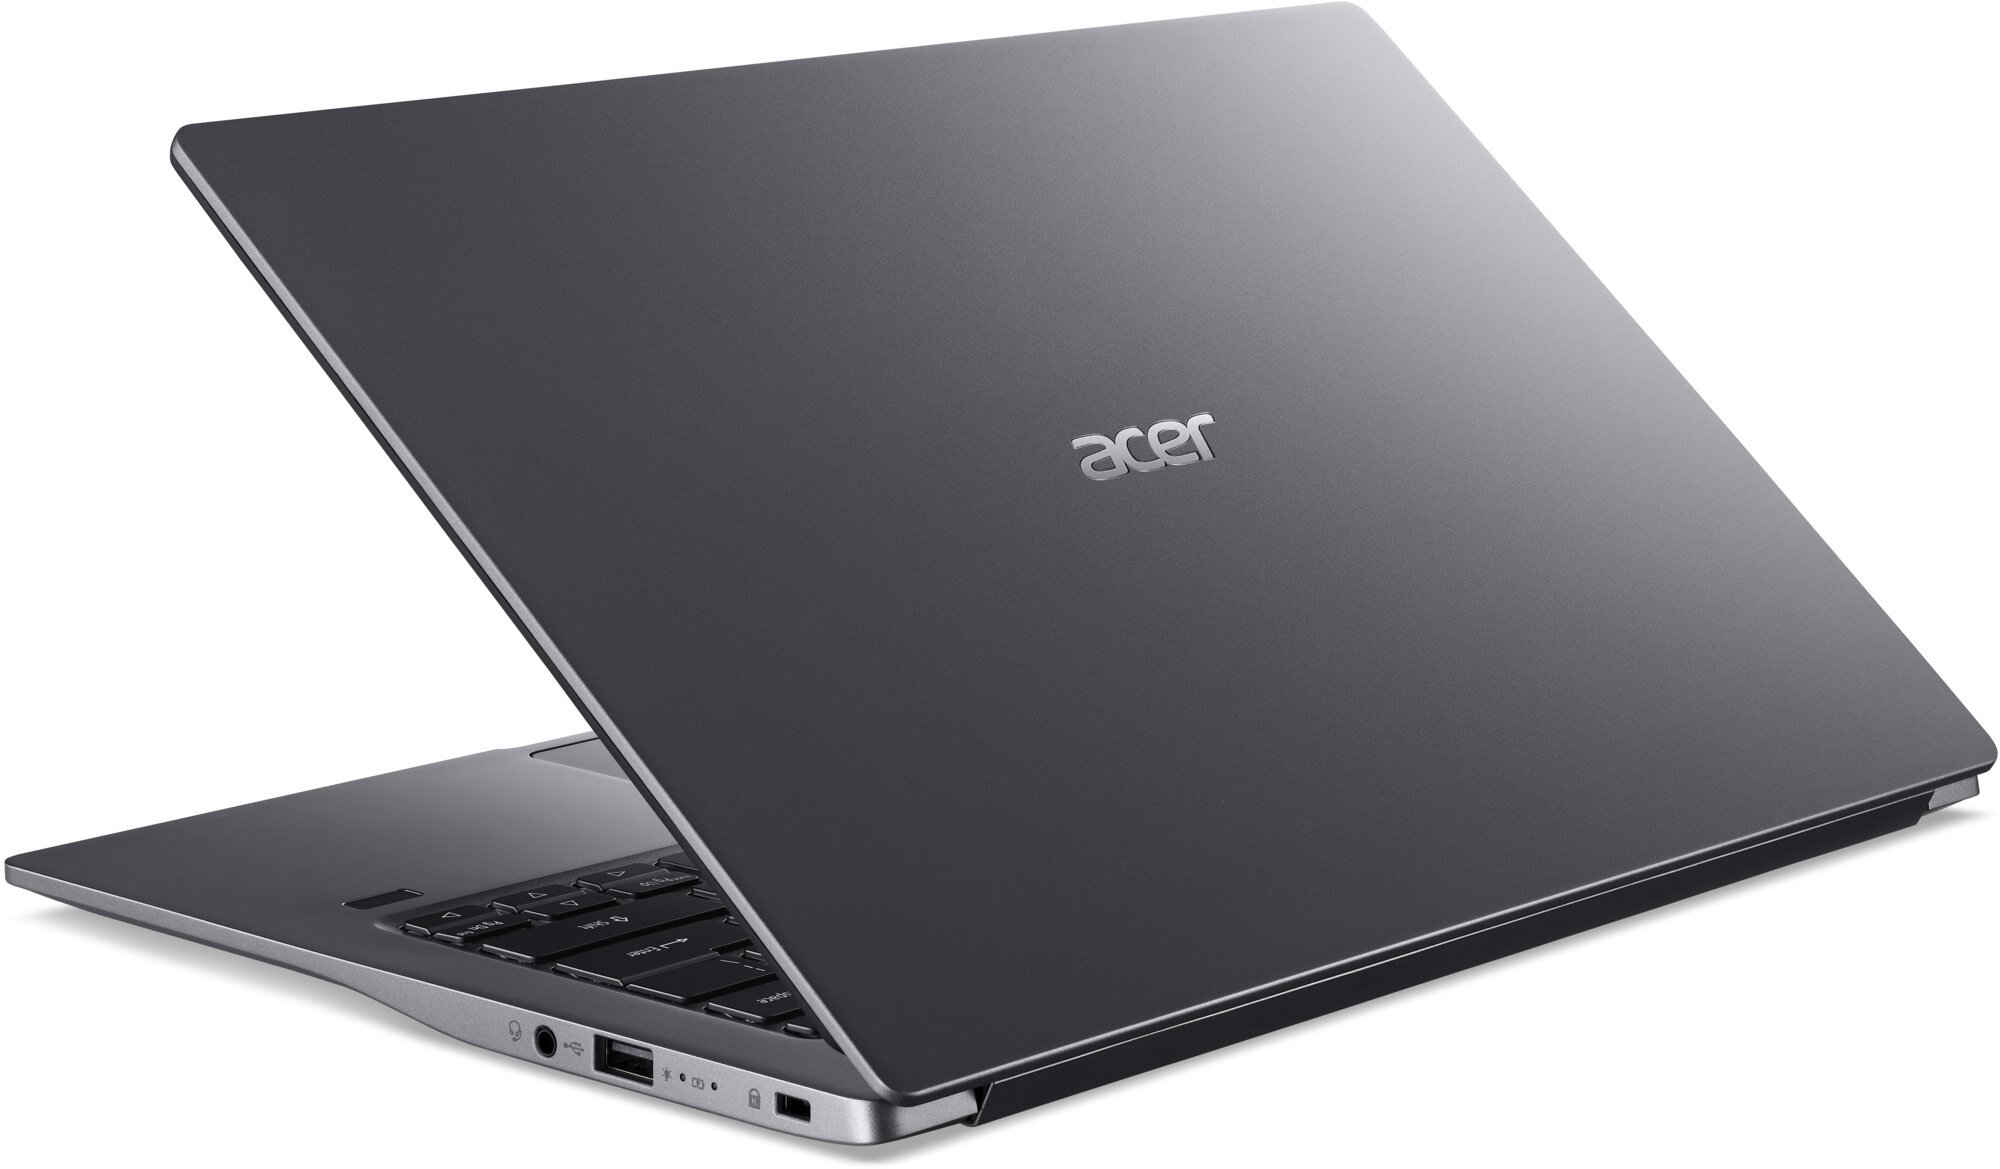 Acer Swift 3 SF314-57-71B6